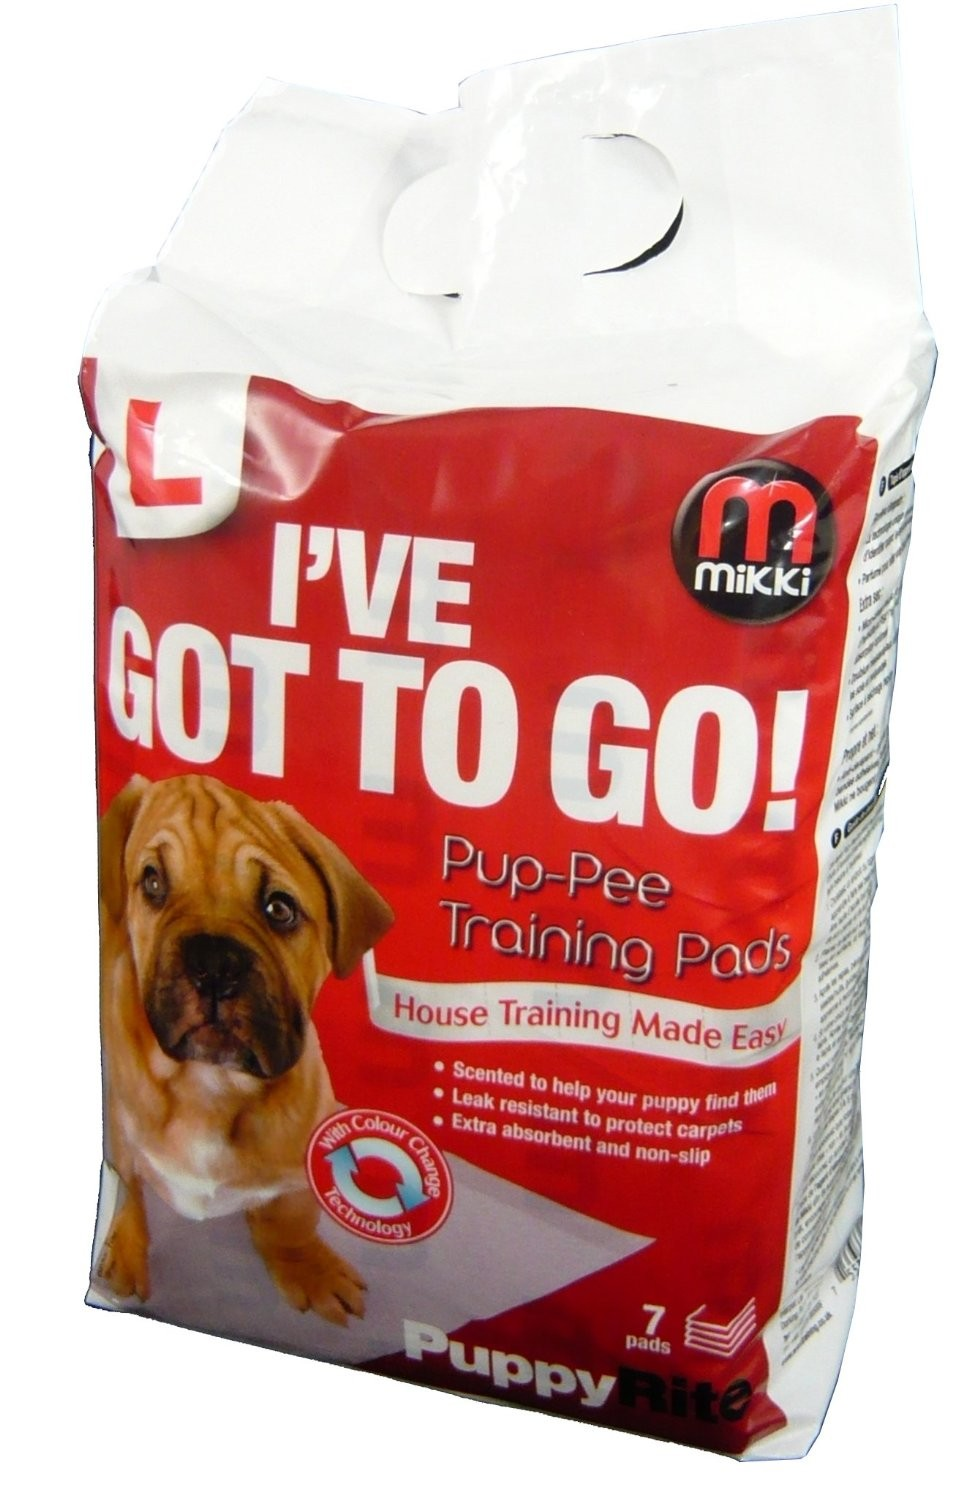 Pup-pee Pads Puppy Training Pads 7 Pack